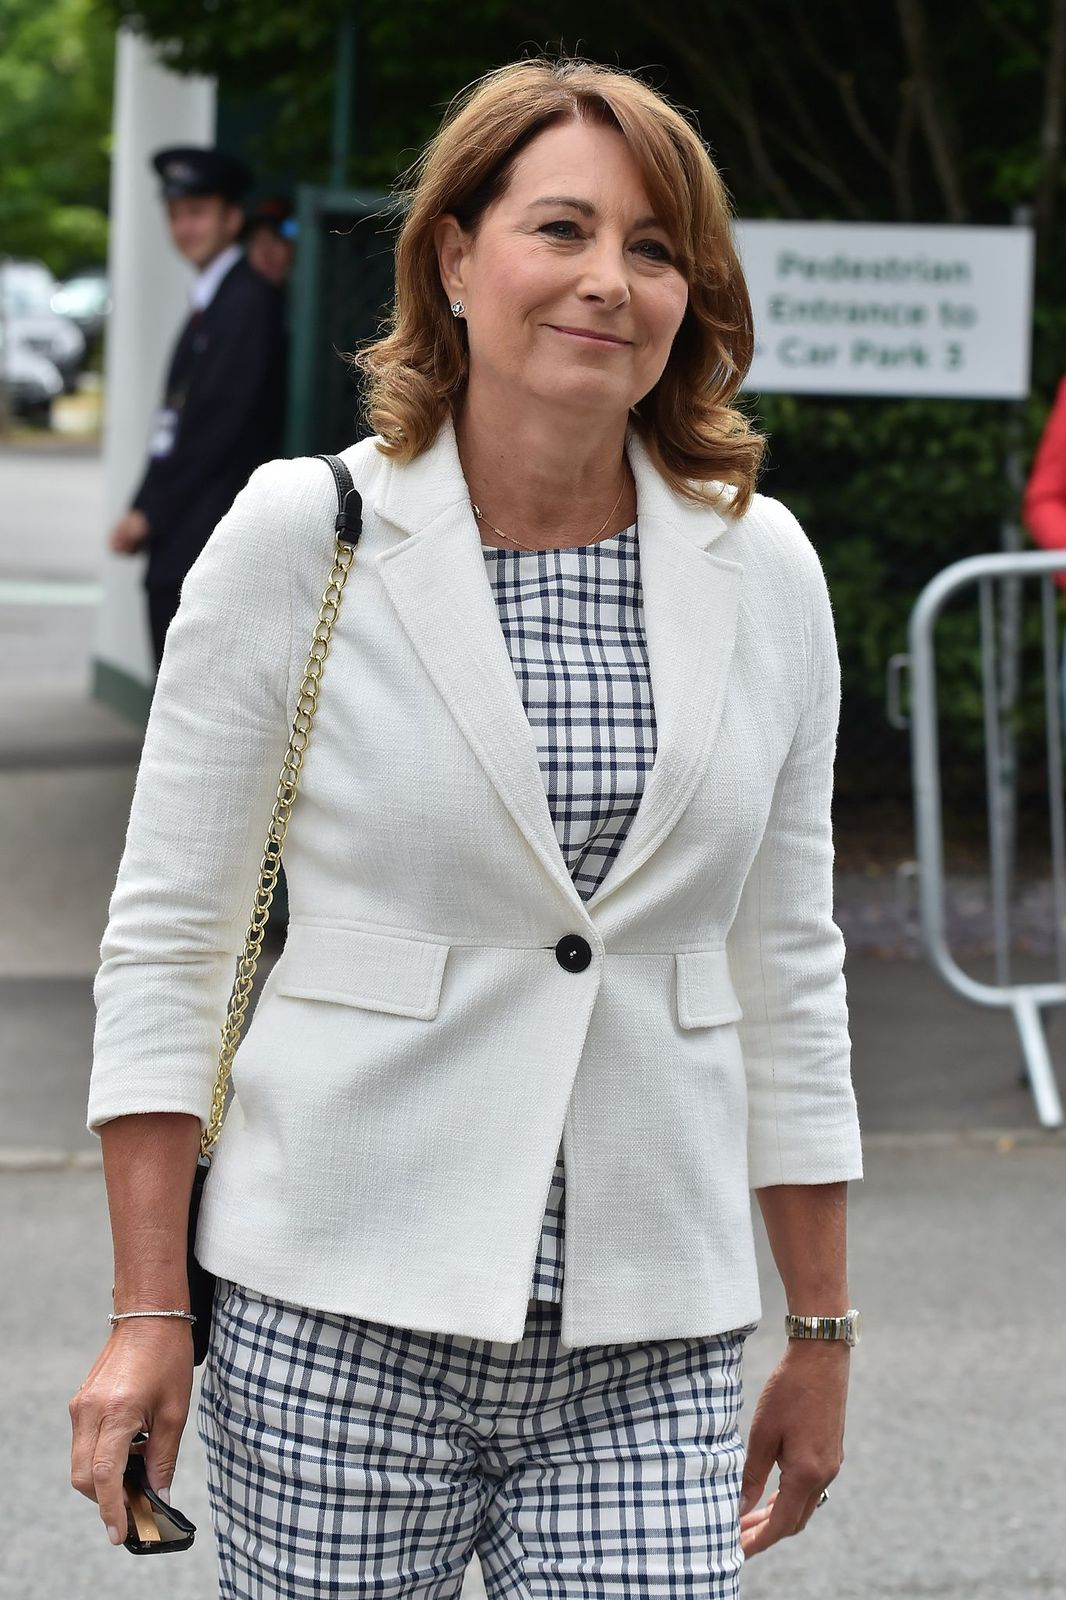 Carole Middleton seen at Day 11 of Wimbledon 2017 on July 14, 2017 in London, England | Photo: Getty Images